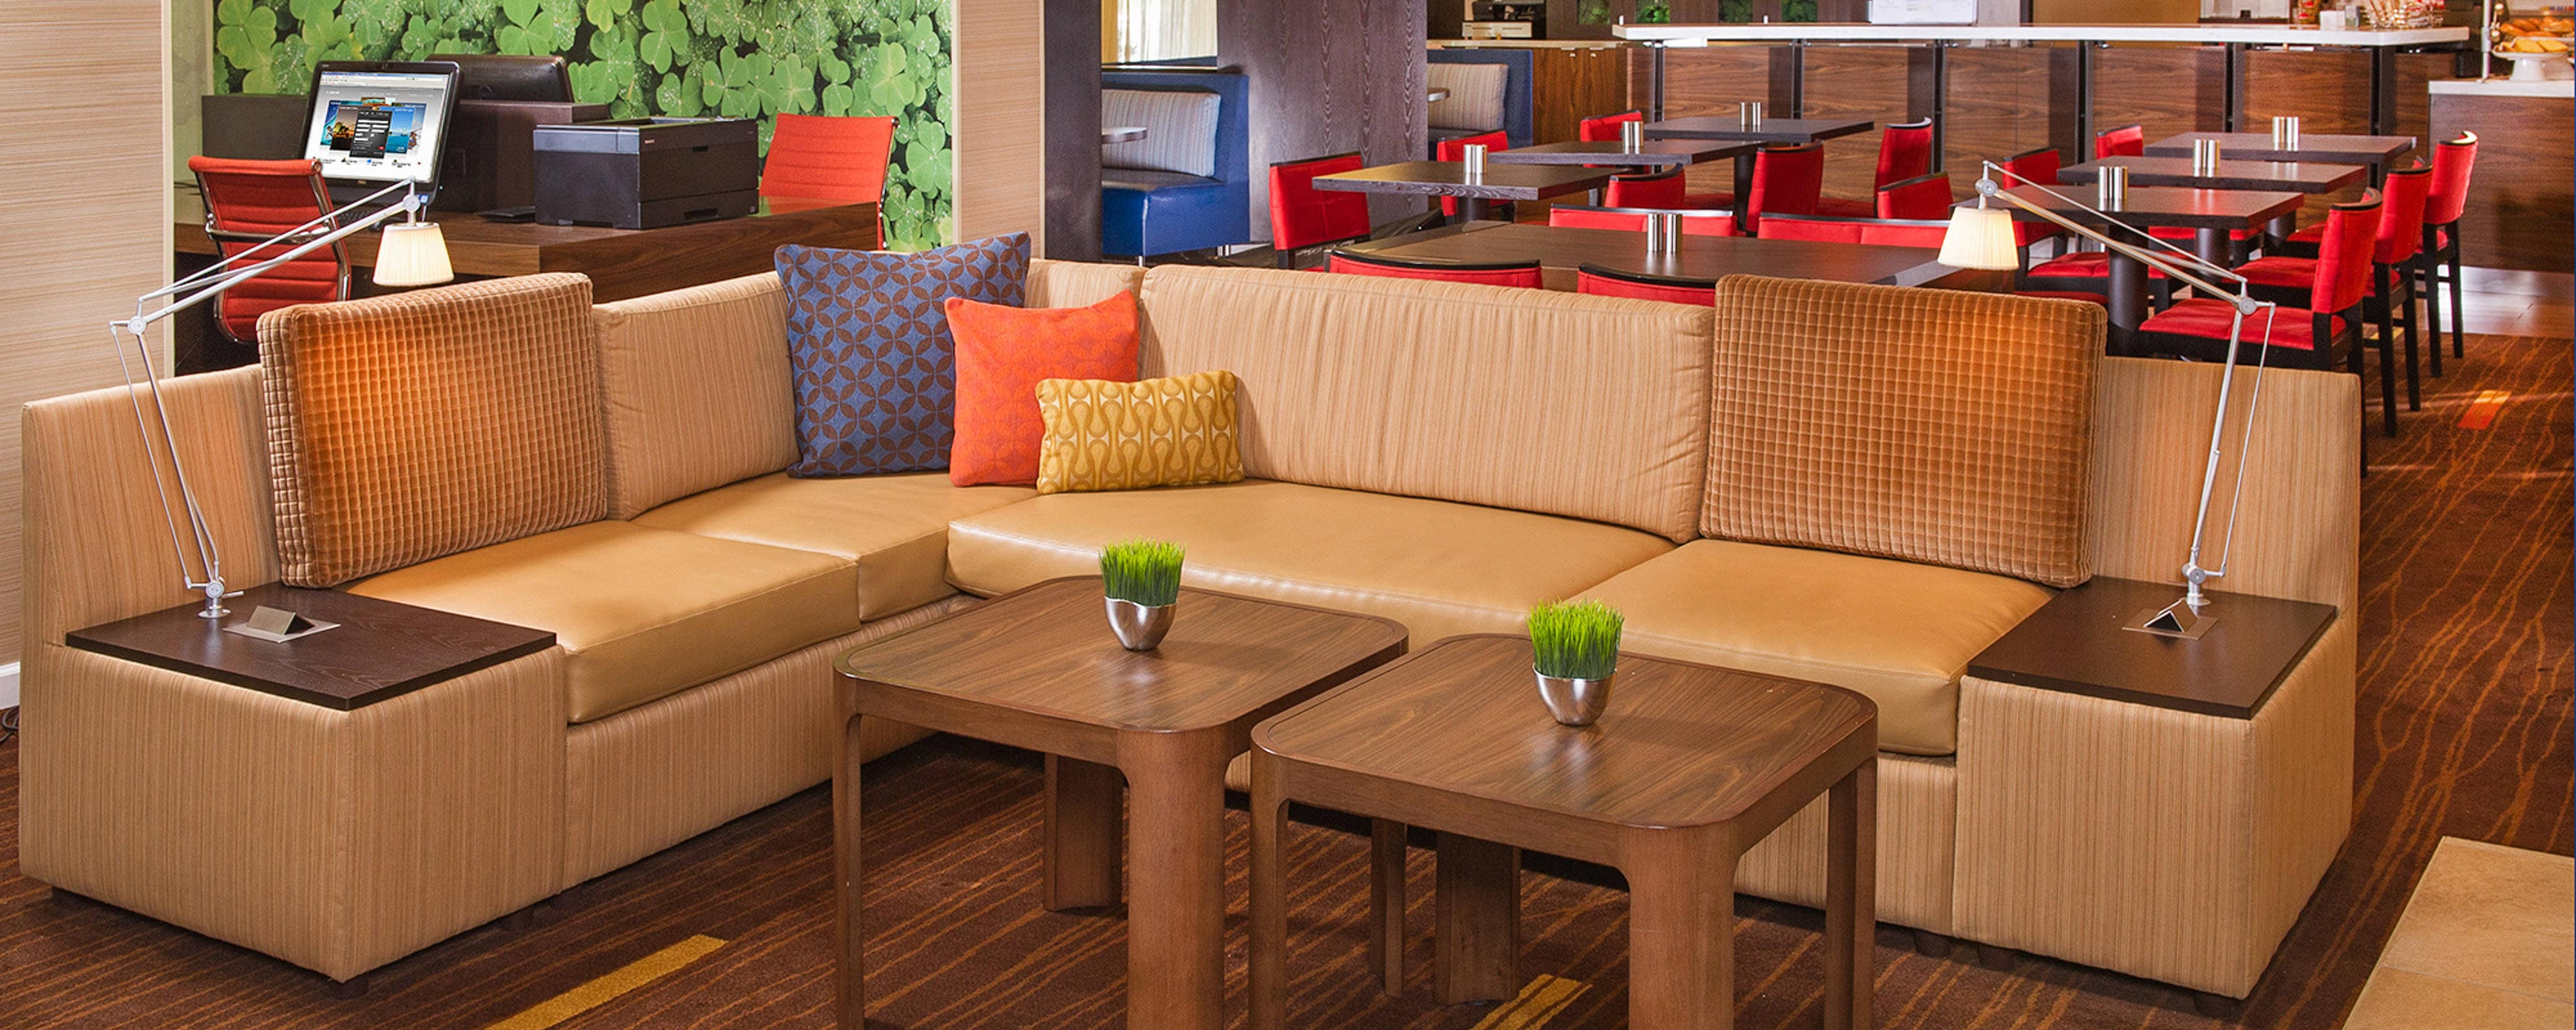 Secaucus Meadowlands Hotel - Seating Area